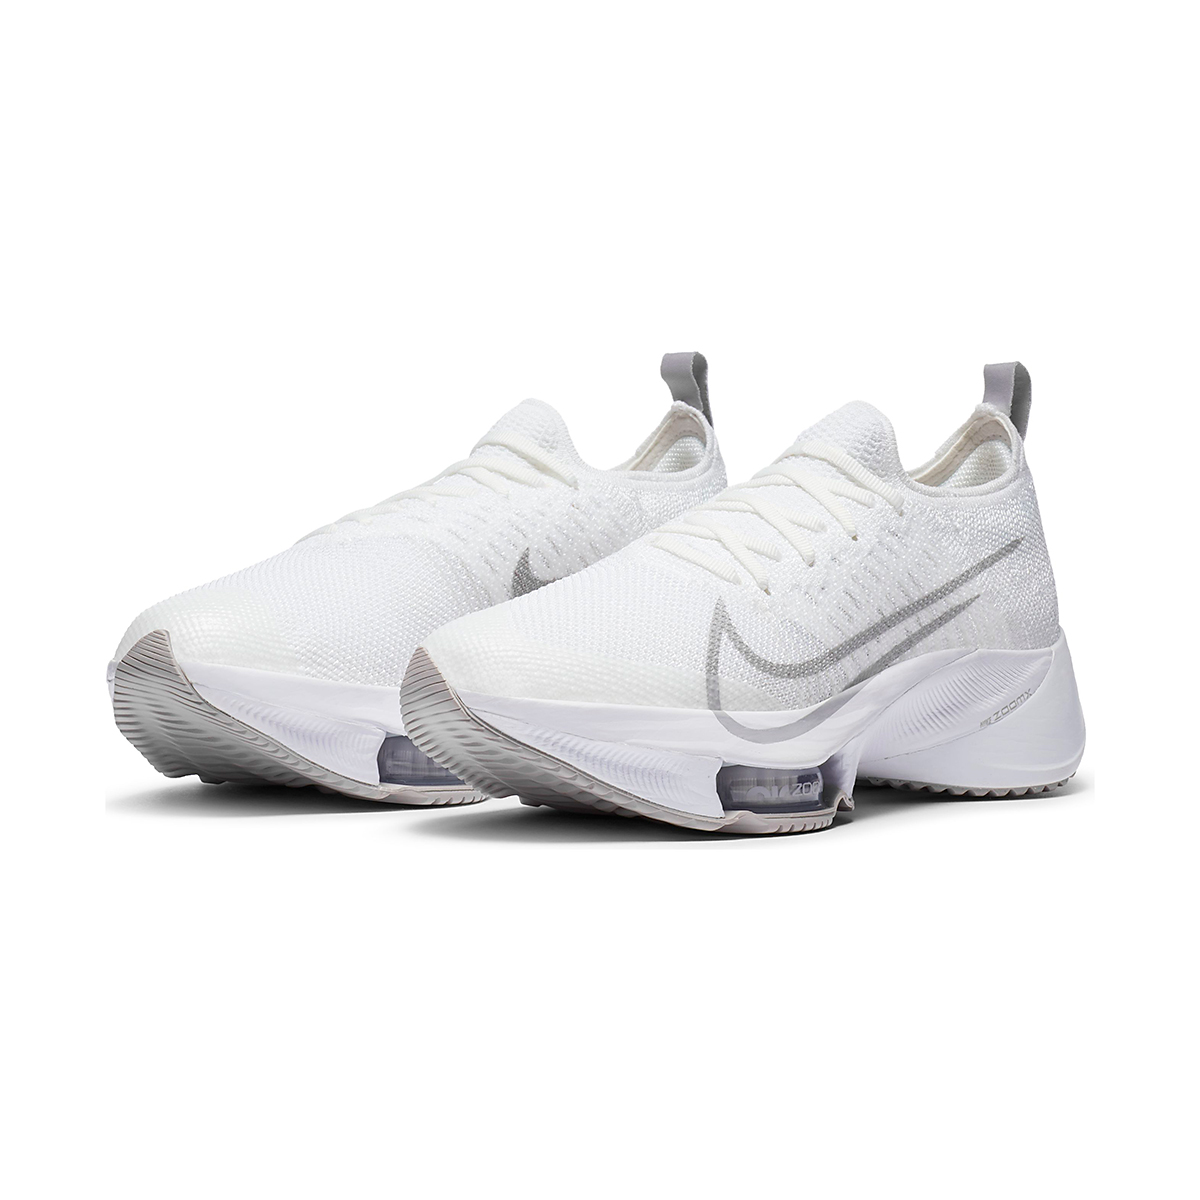 Women's Nike Air Zoom Tempo NEXT% Running Shoe - Color: White/Atmosphere Grey-Pure Platinum - Size: 5 - Width: Regular, White/Atmosphere Grey-Pure Platinum, large, image 4